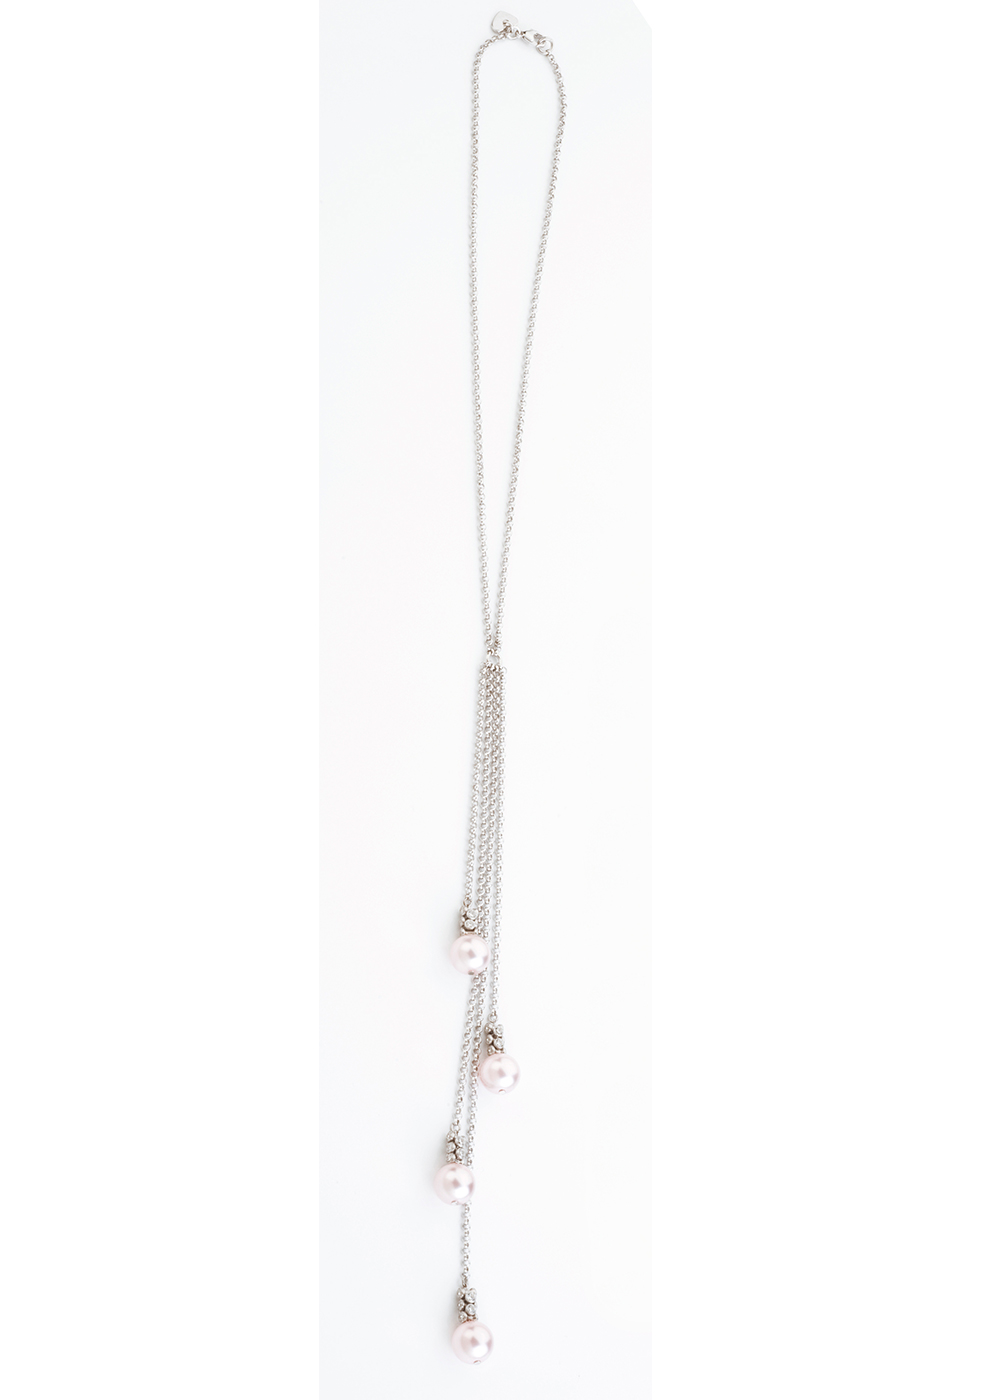 Lovepearl Neck 4